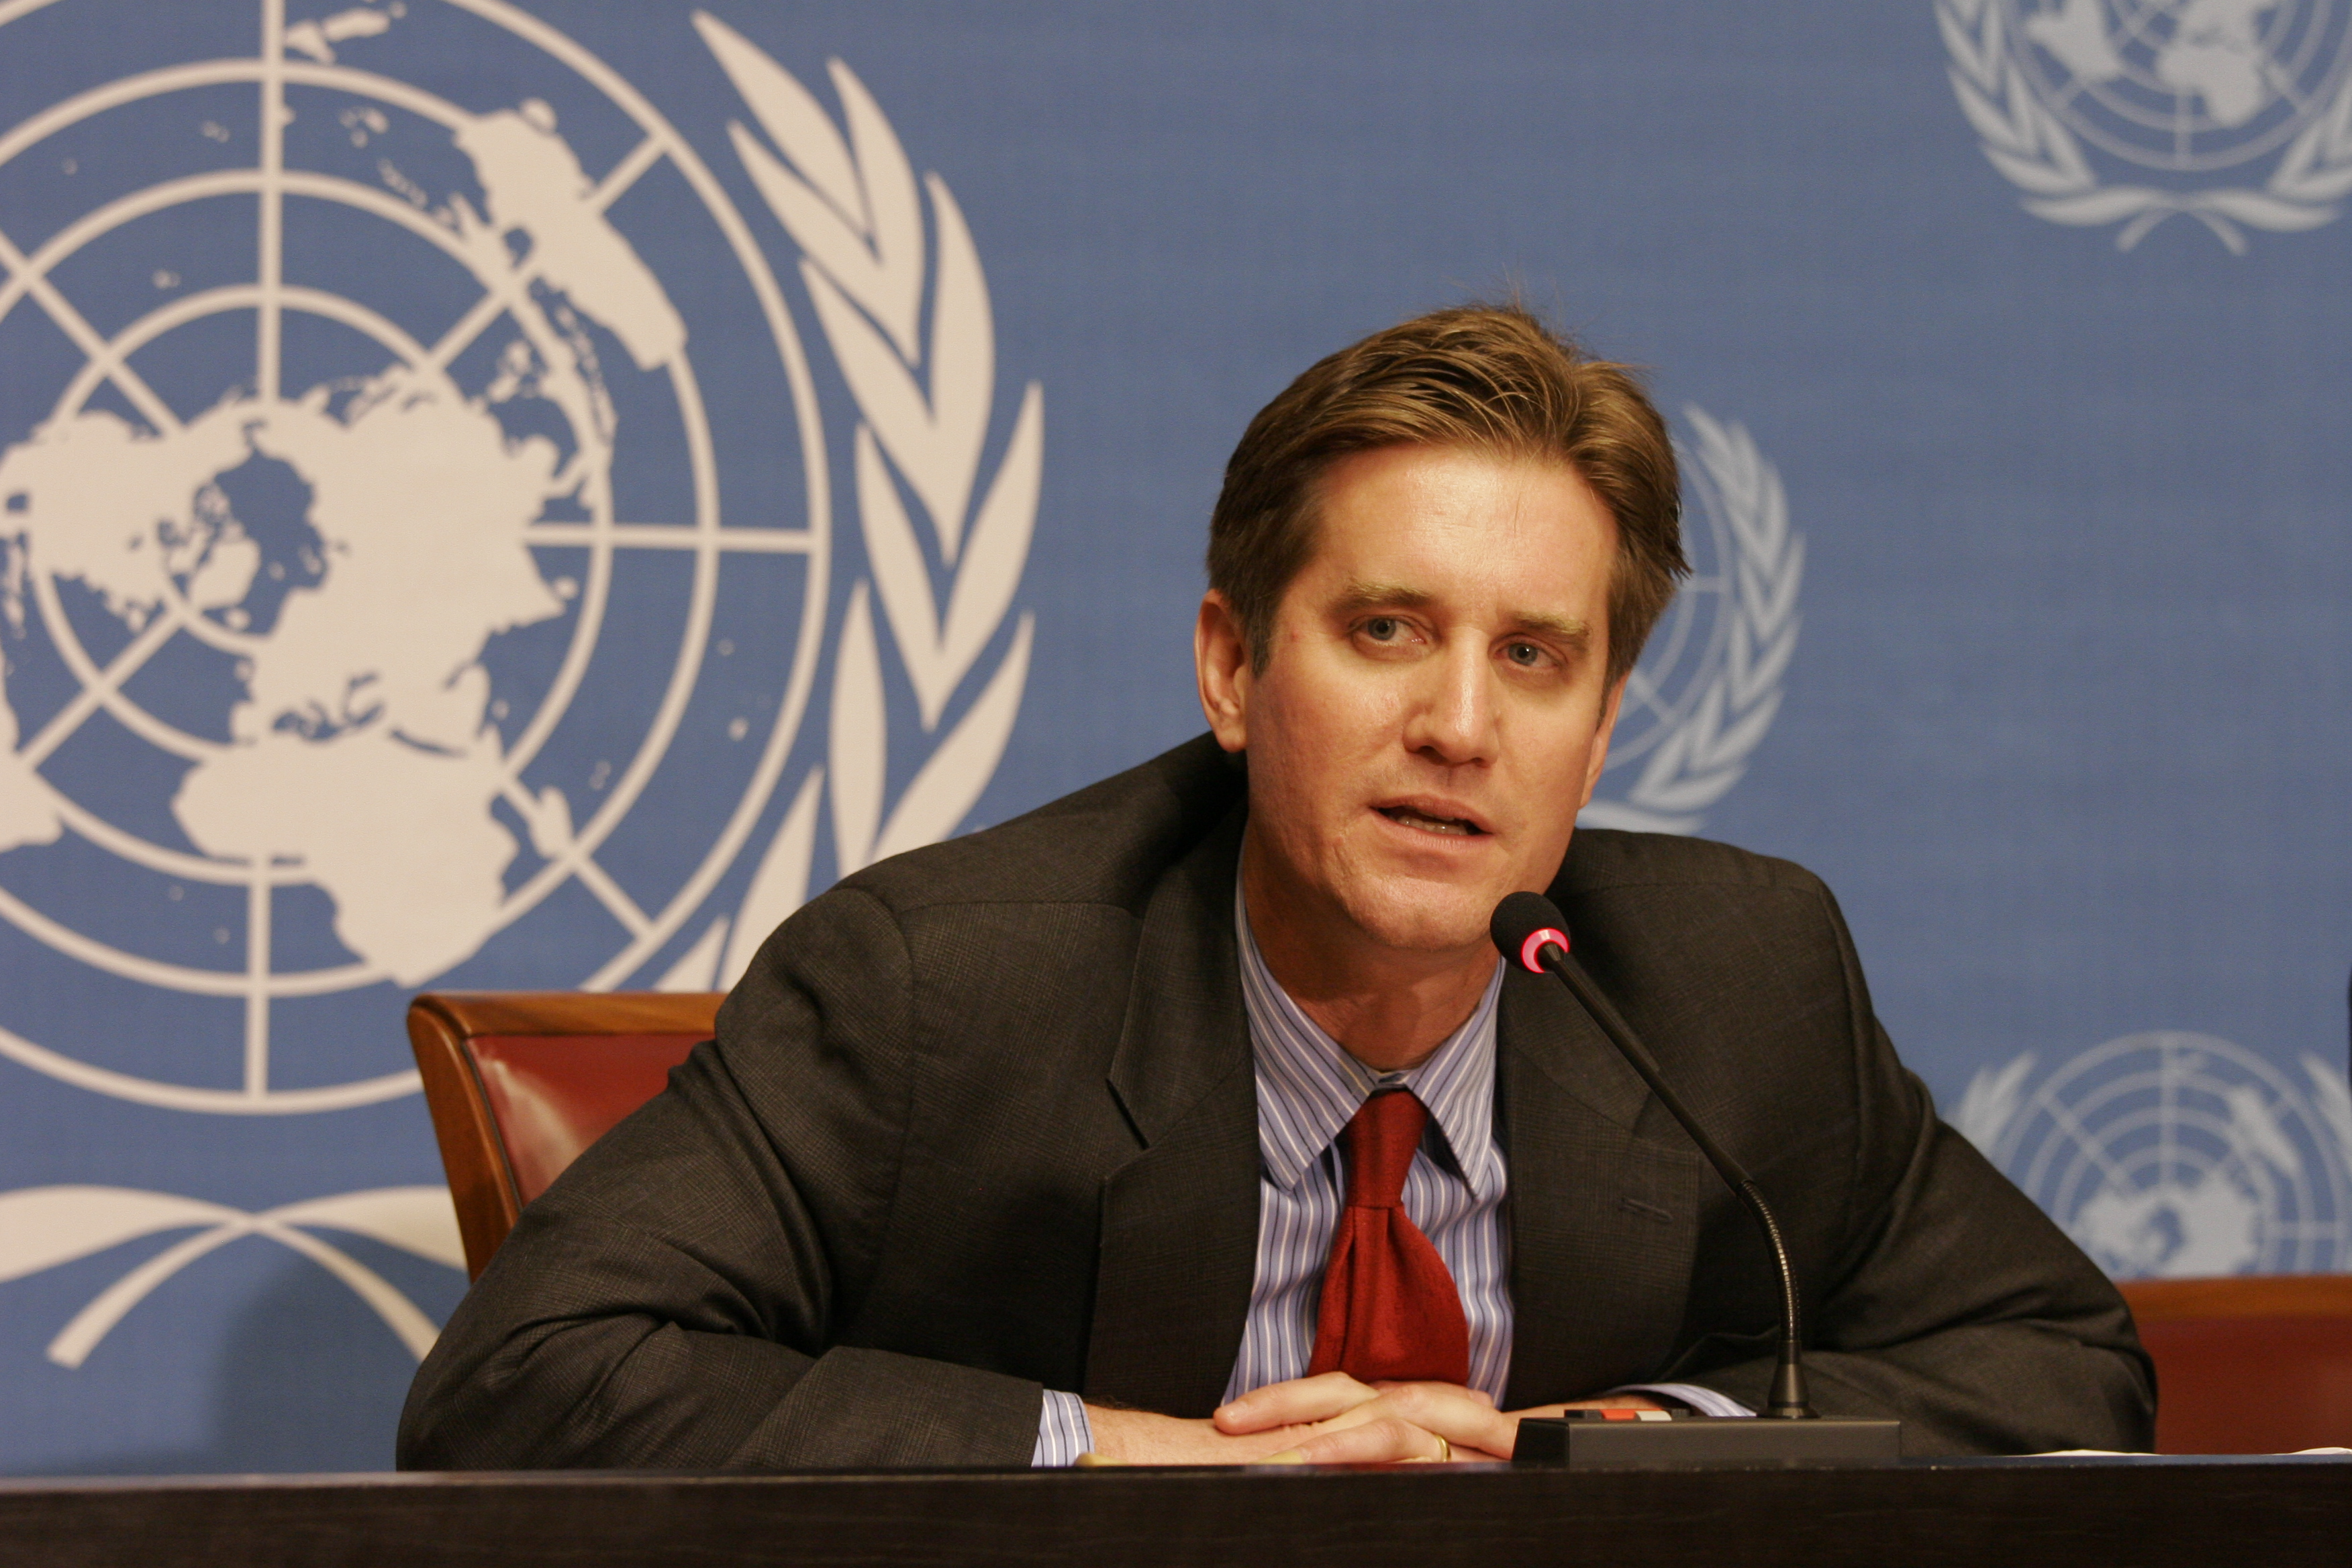 File:Matthew Bryza, Deputy Assistant Secretary of State for European and Eurasian Affairs 2.jpg - Wikimedia Commons